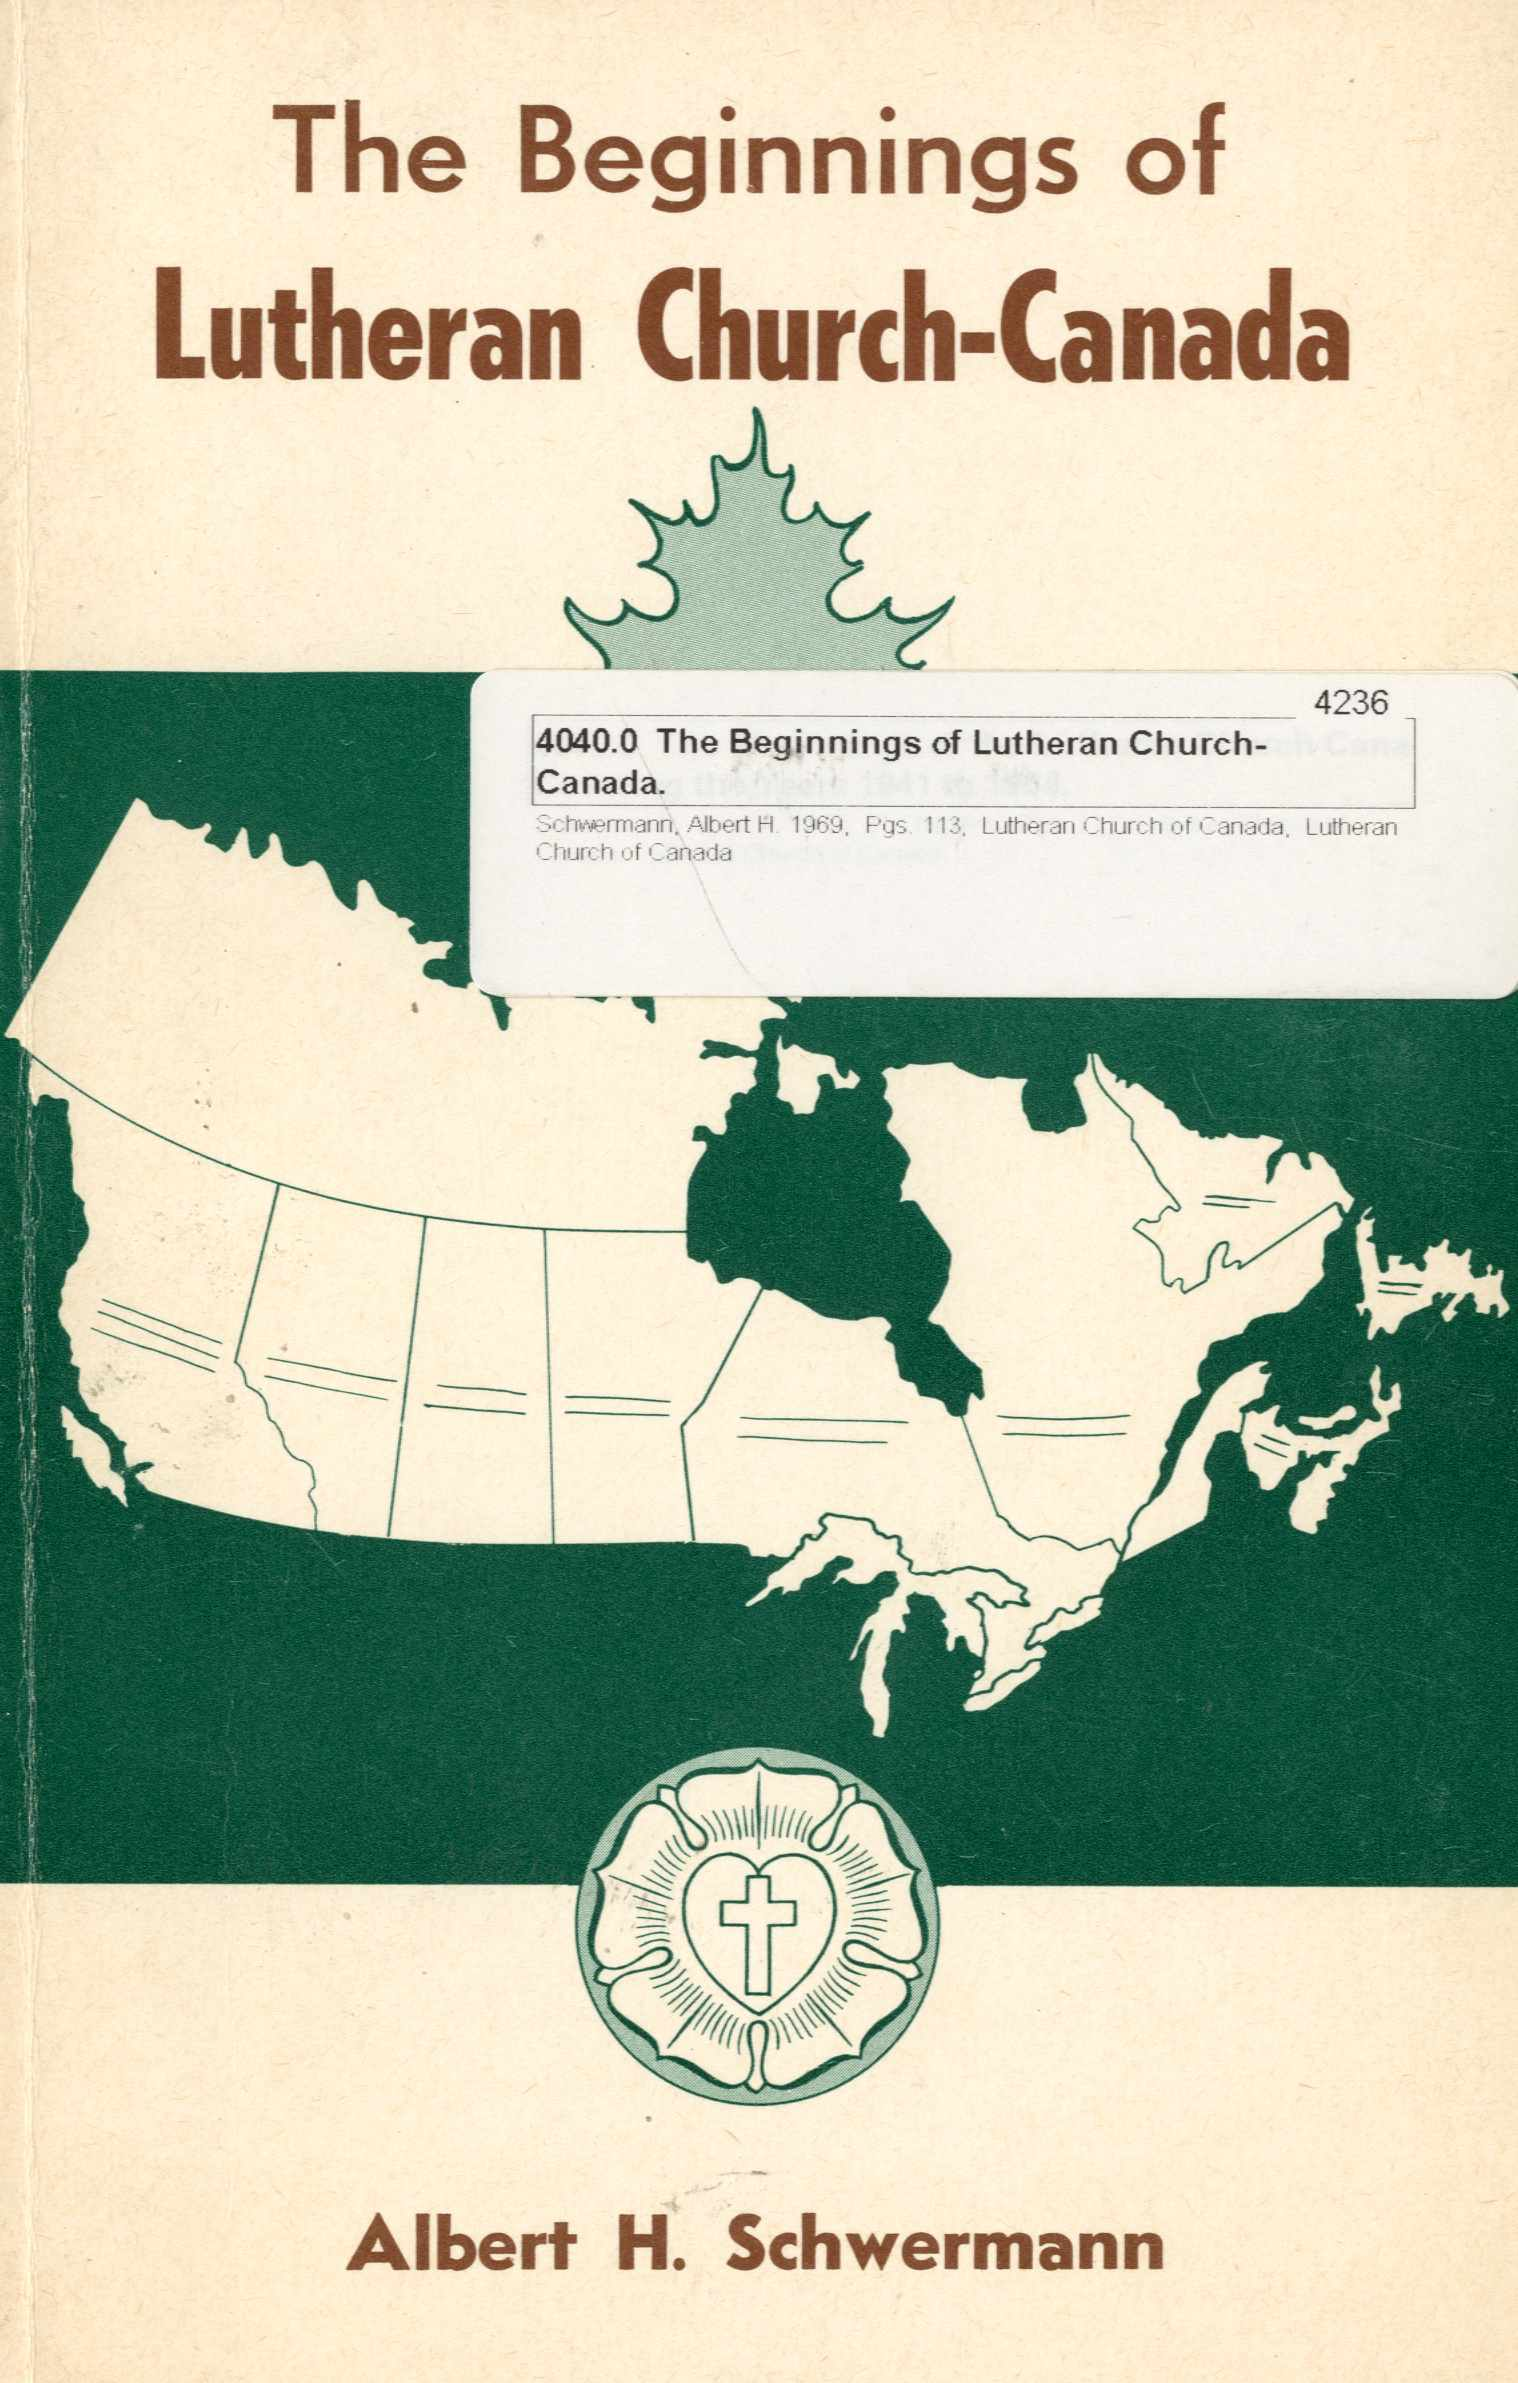 The Beginnings of Lutheran Church-Canada Image